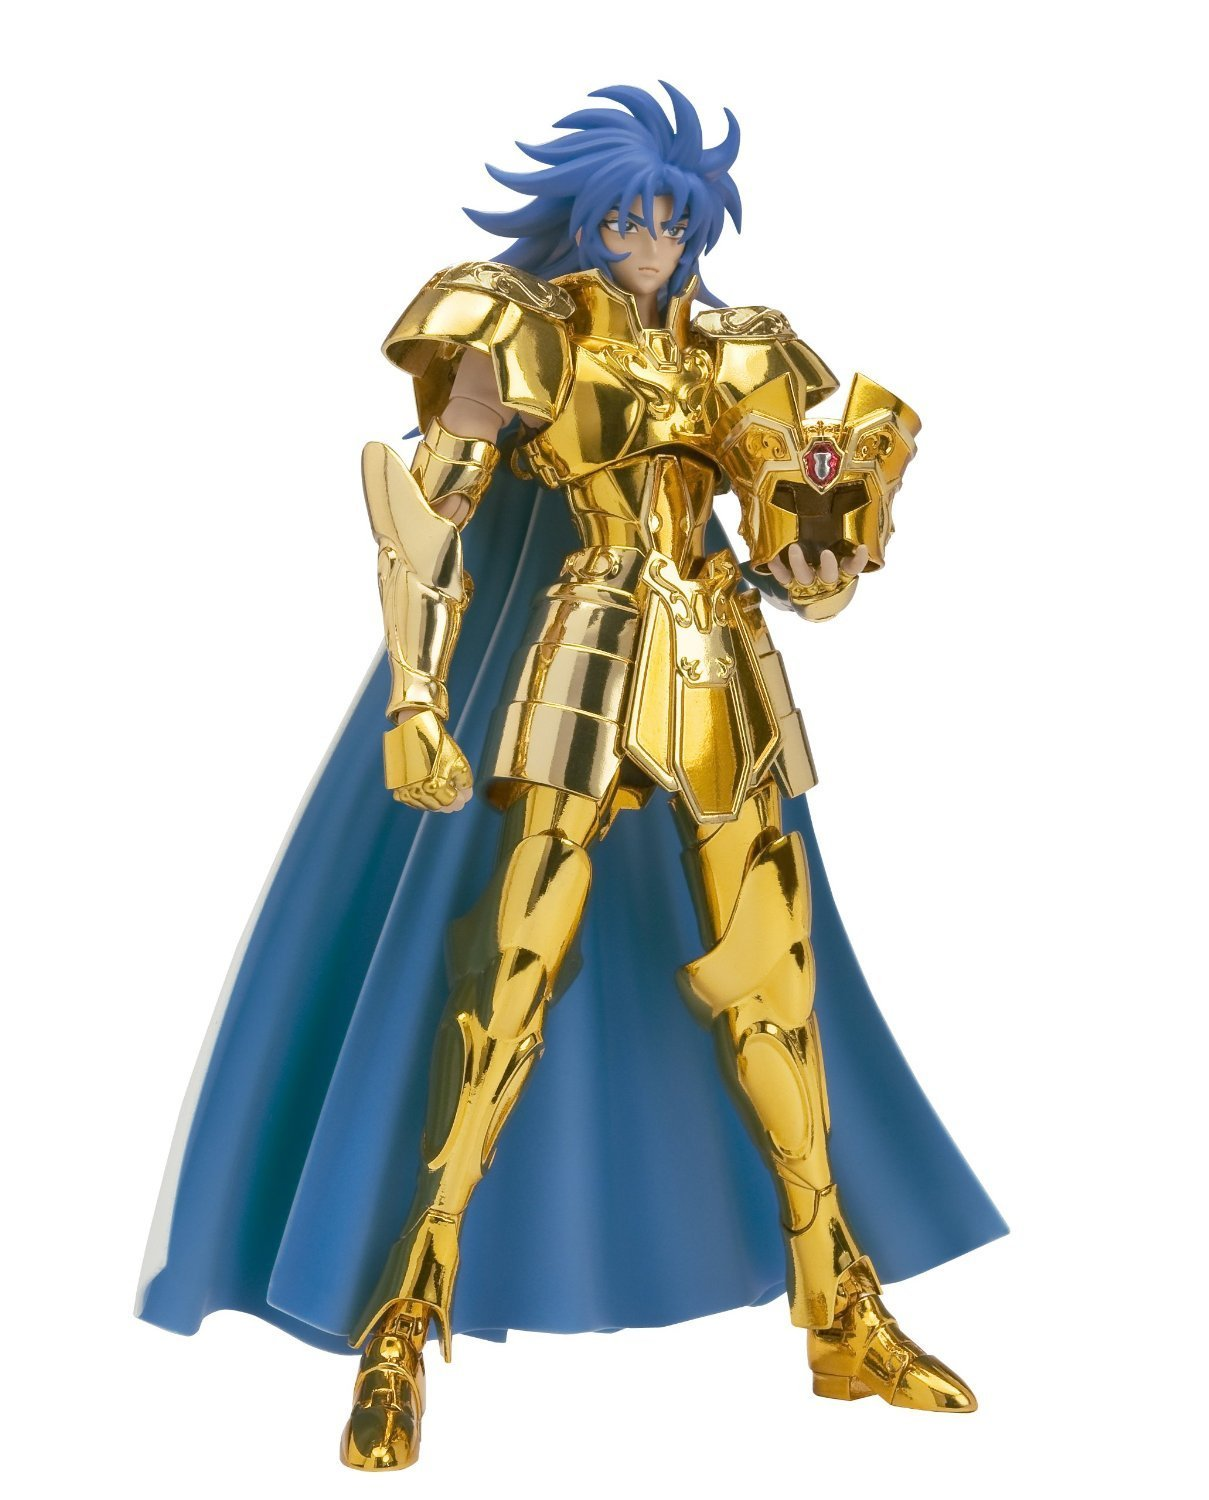 Saint Seiya Gemini Saga Revival Ver. Saint Cloth Myth EX Action Figure